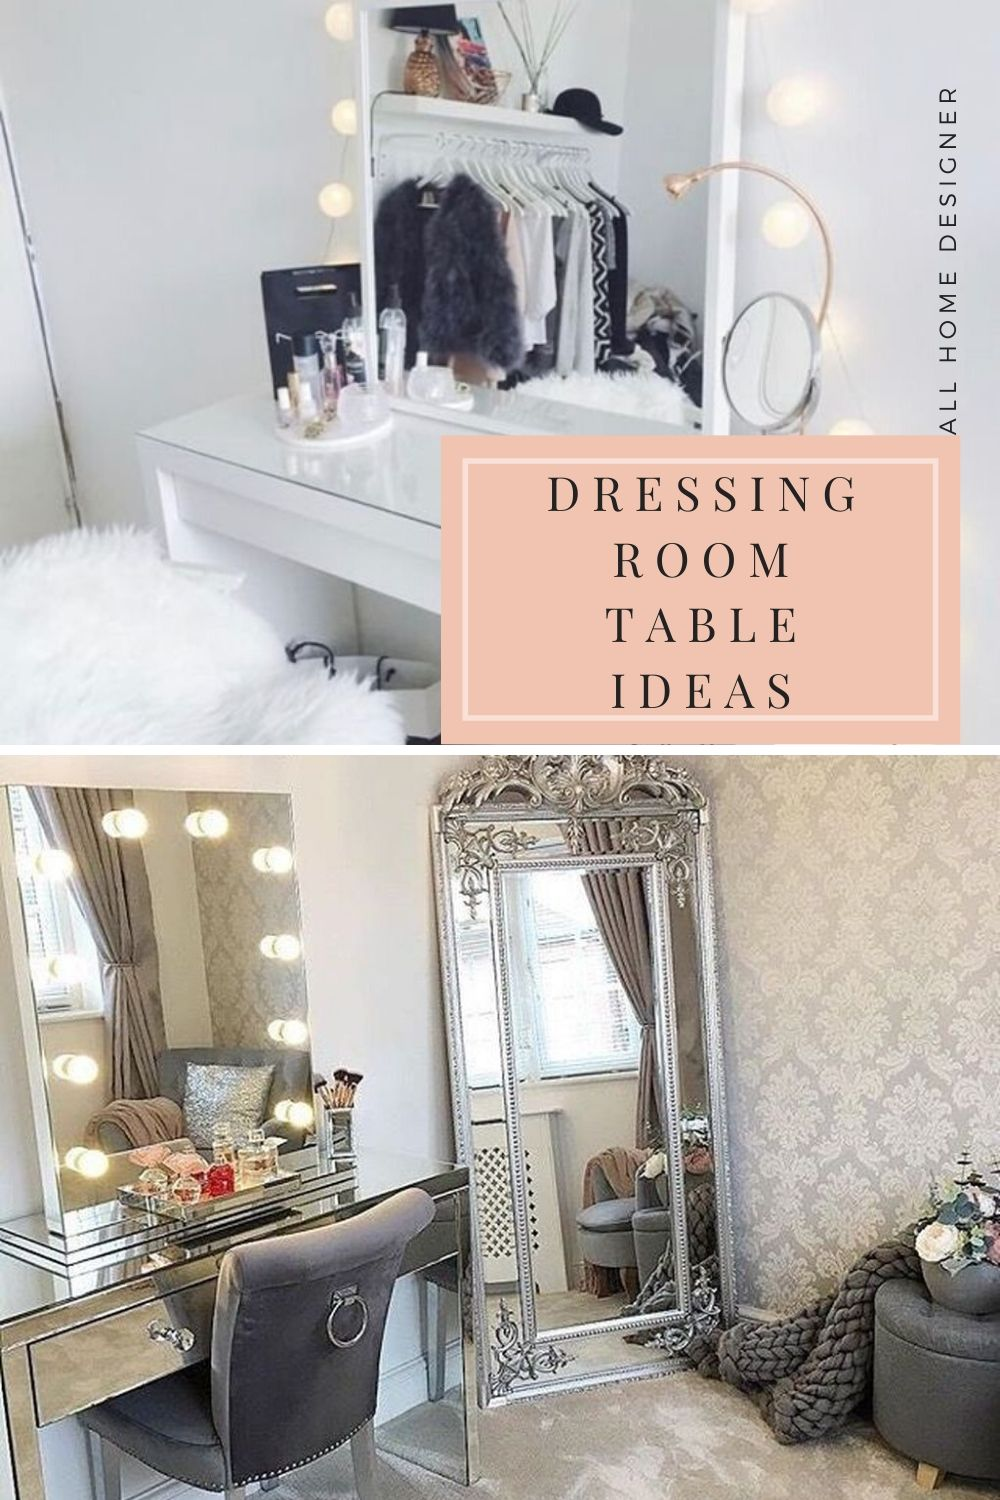 Perfect Dressing Table Ideas In 2020 Dressing Room Decor Dressing Room Design Perfect Dressing